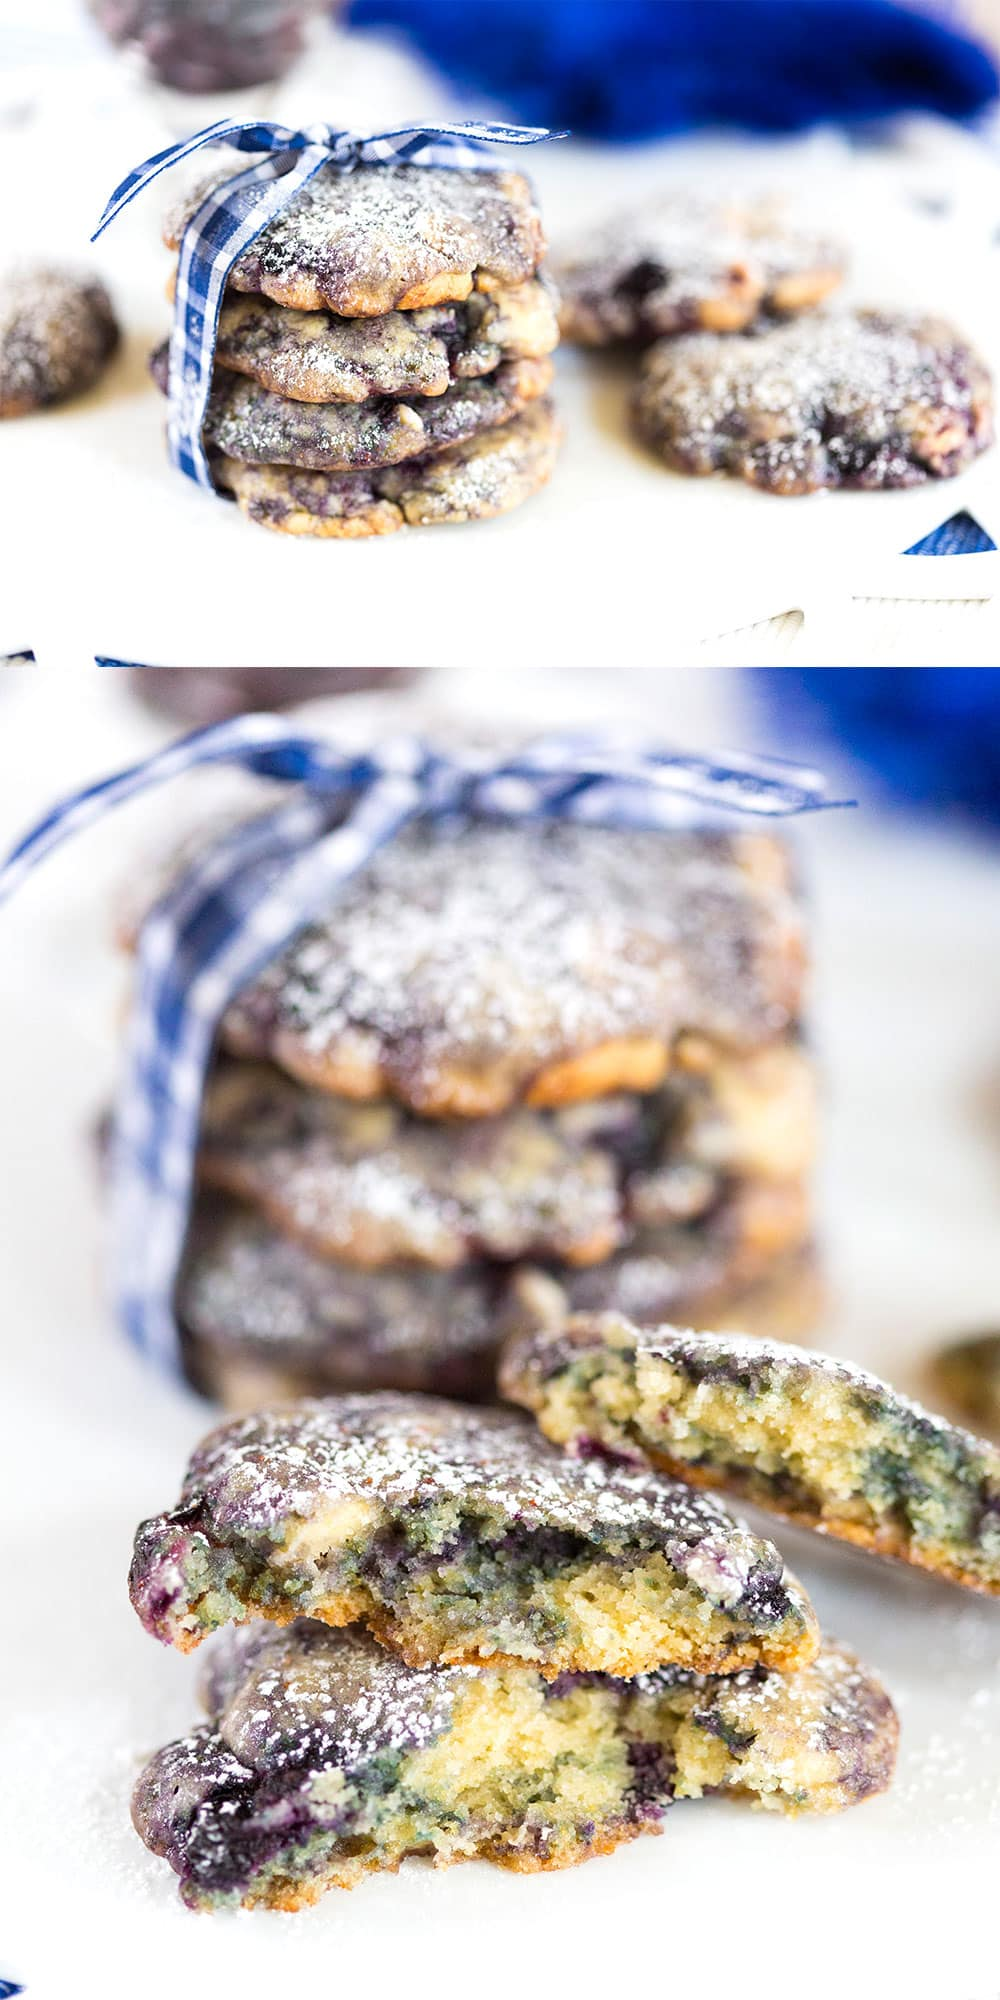 Blueberry White Chocolate Chip Cookies, so good!